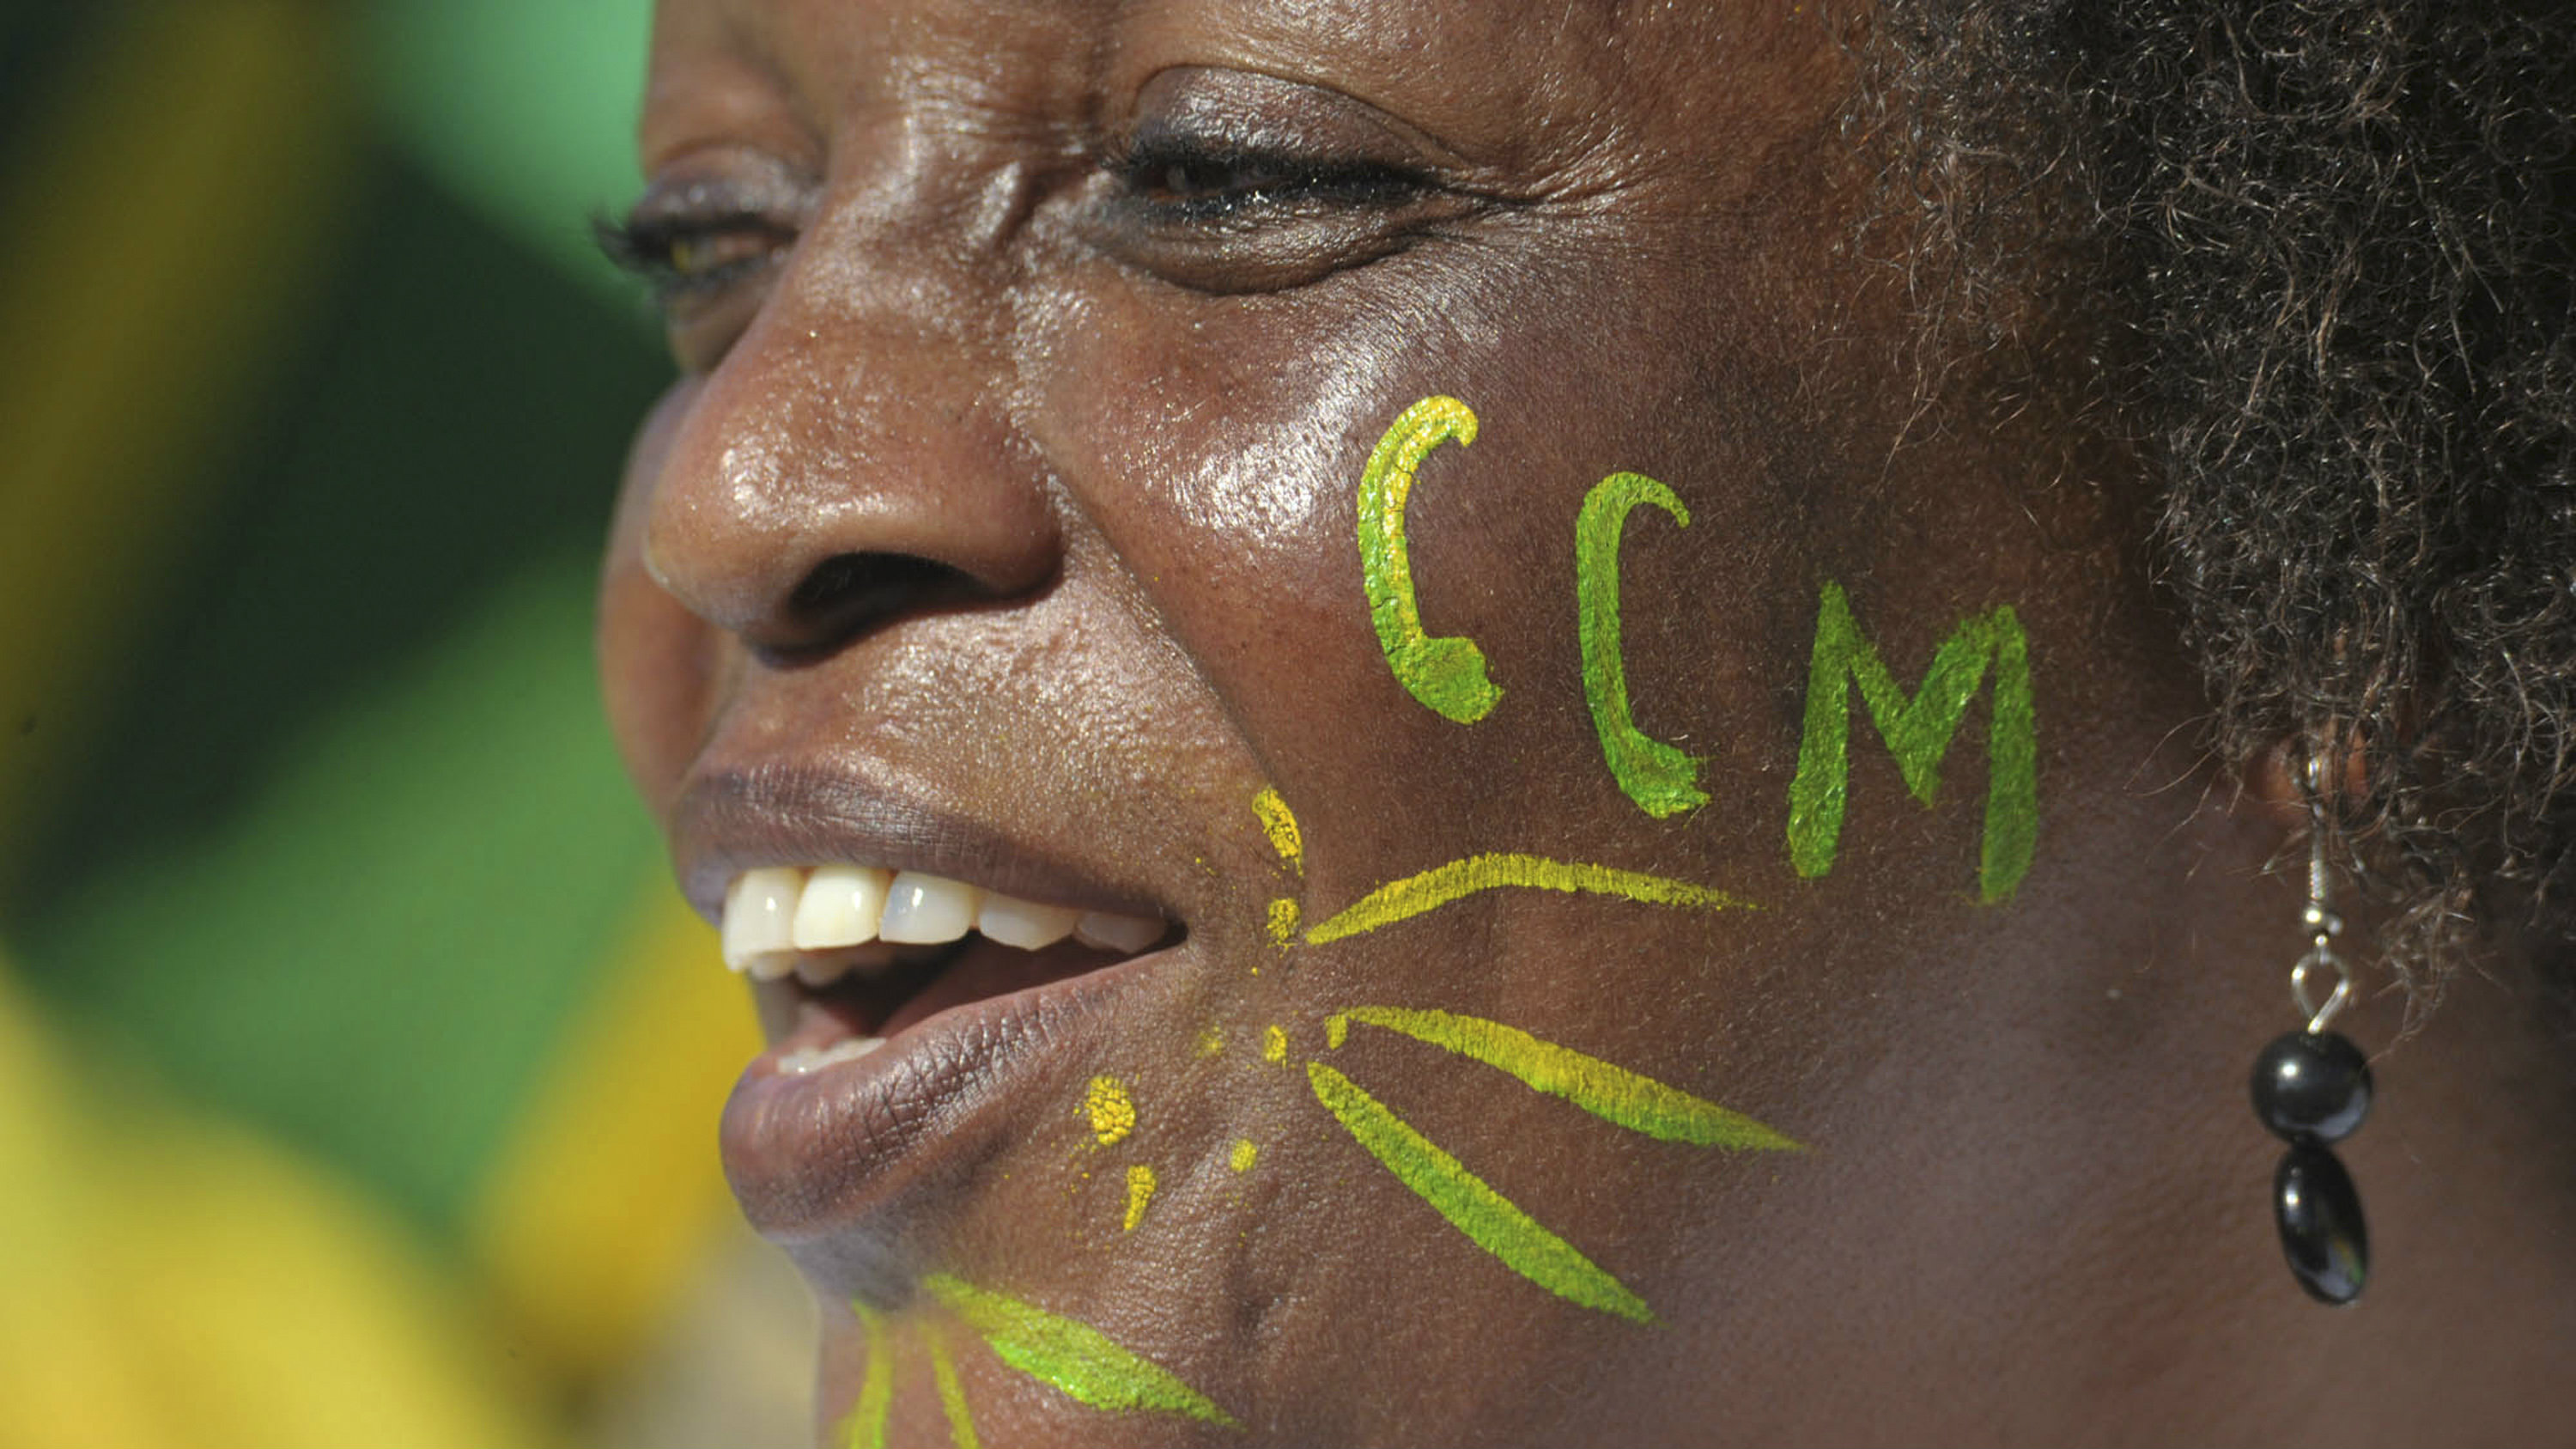 A Supporter of the Tanzania ruling party, Chama Cha Mapinduzi (CCM), cheers as the party's presidential candidate, Jakaya Kikwete, addressed a campaign rally at Jangwani grounds in Dar es Salaam Saturday, Oct. 30, 2010.